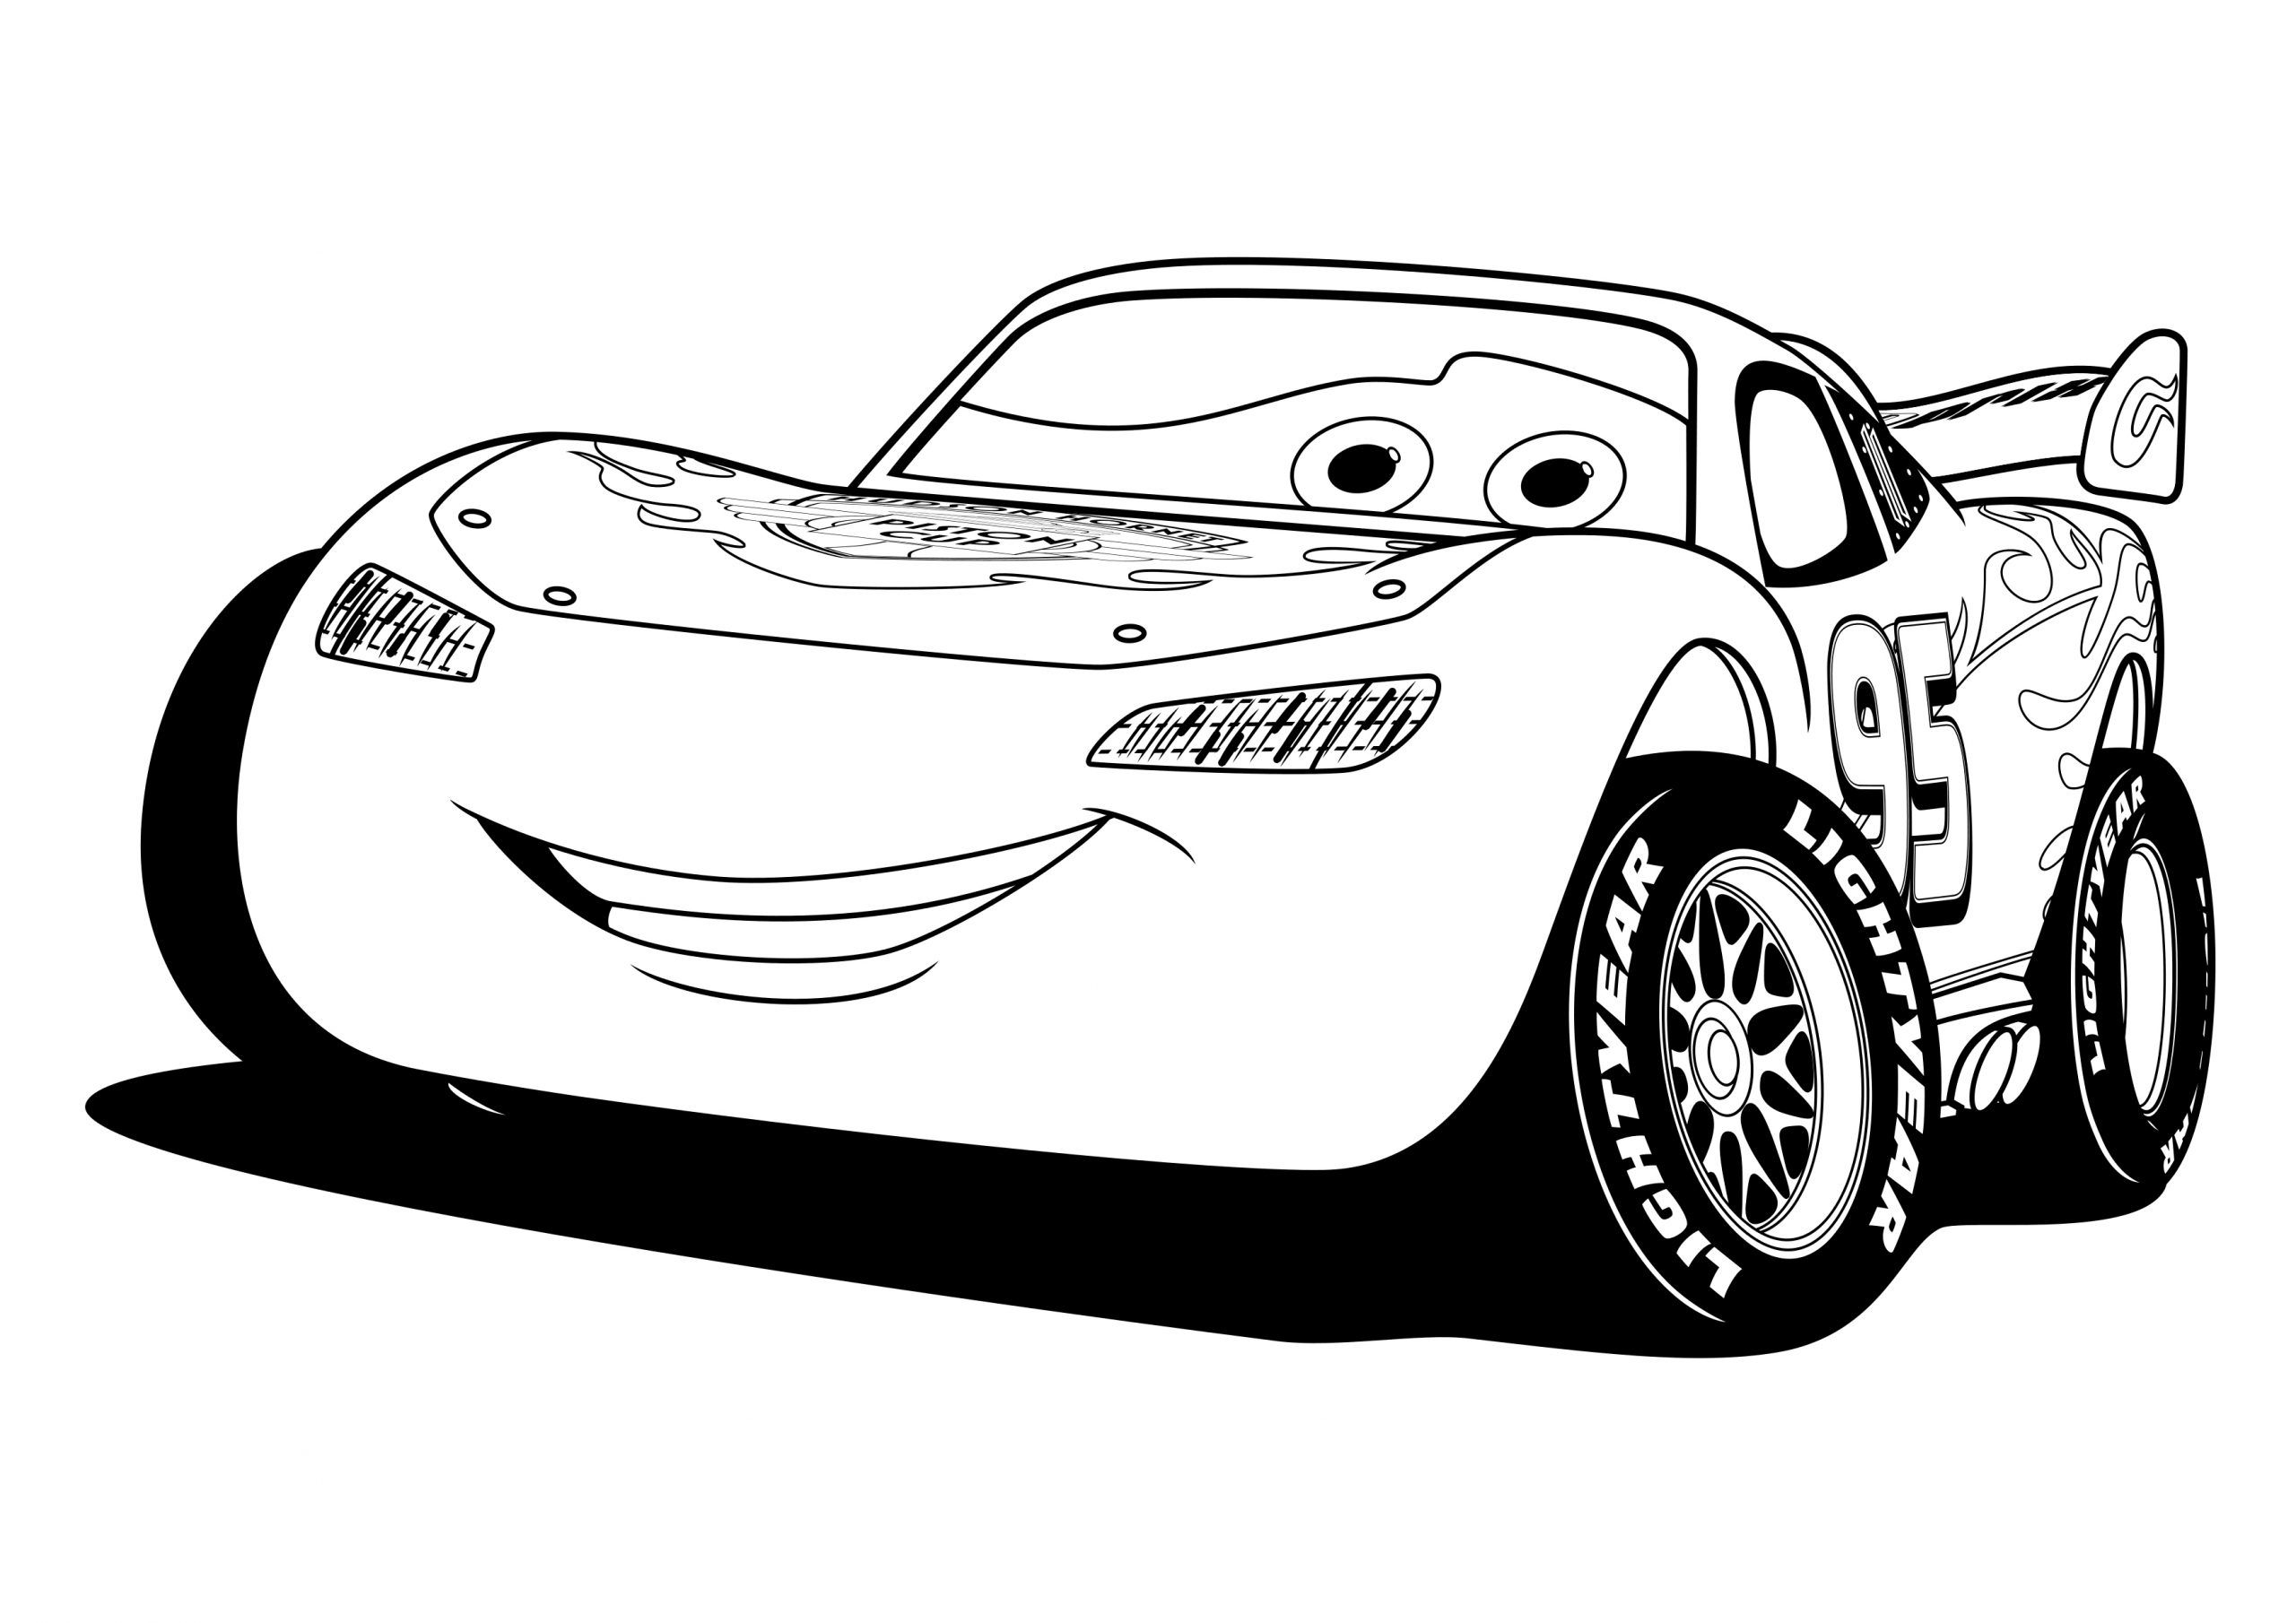 lighting mcqueen coloring get this free lightning mcqueen coloring pages 623681 coloring lighting mcqueen